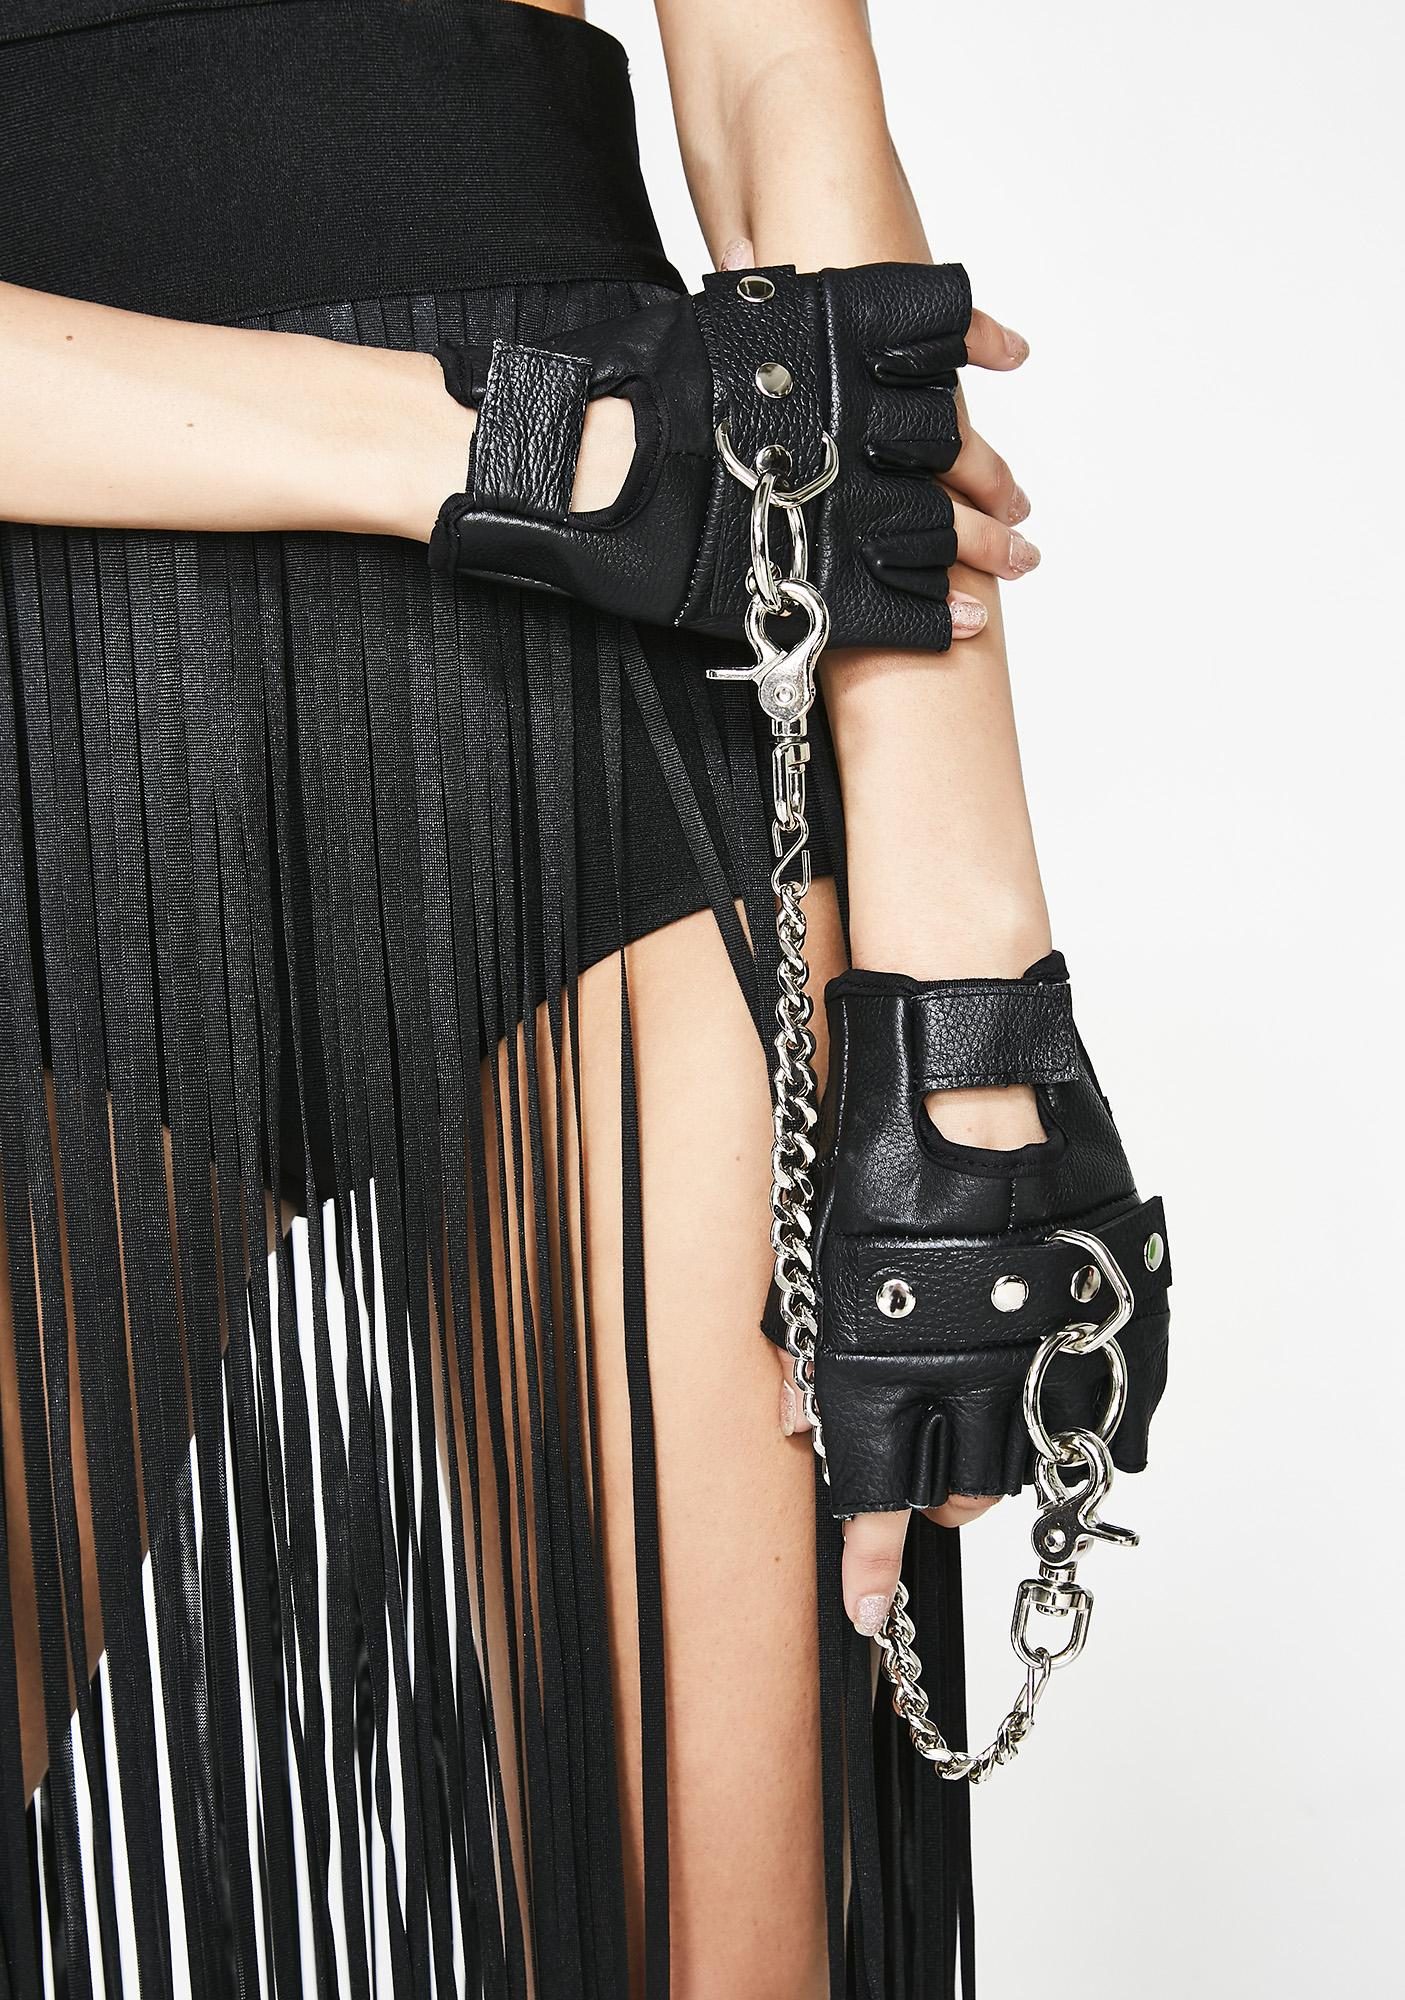 Kept Chained Fingerless Gloves